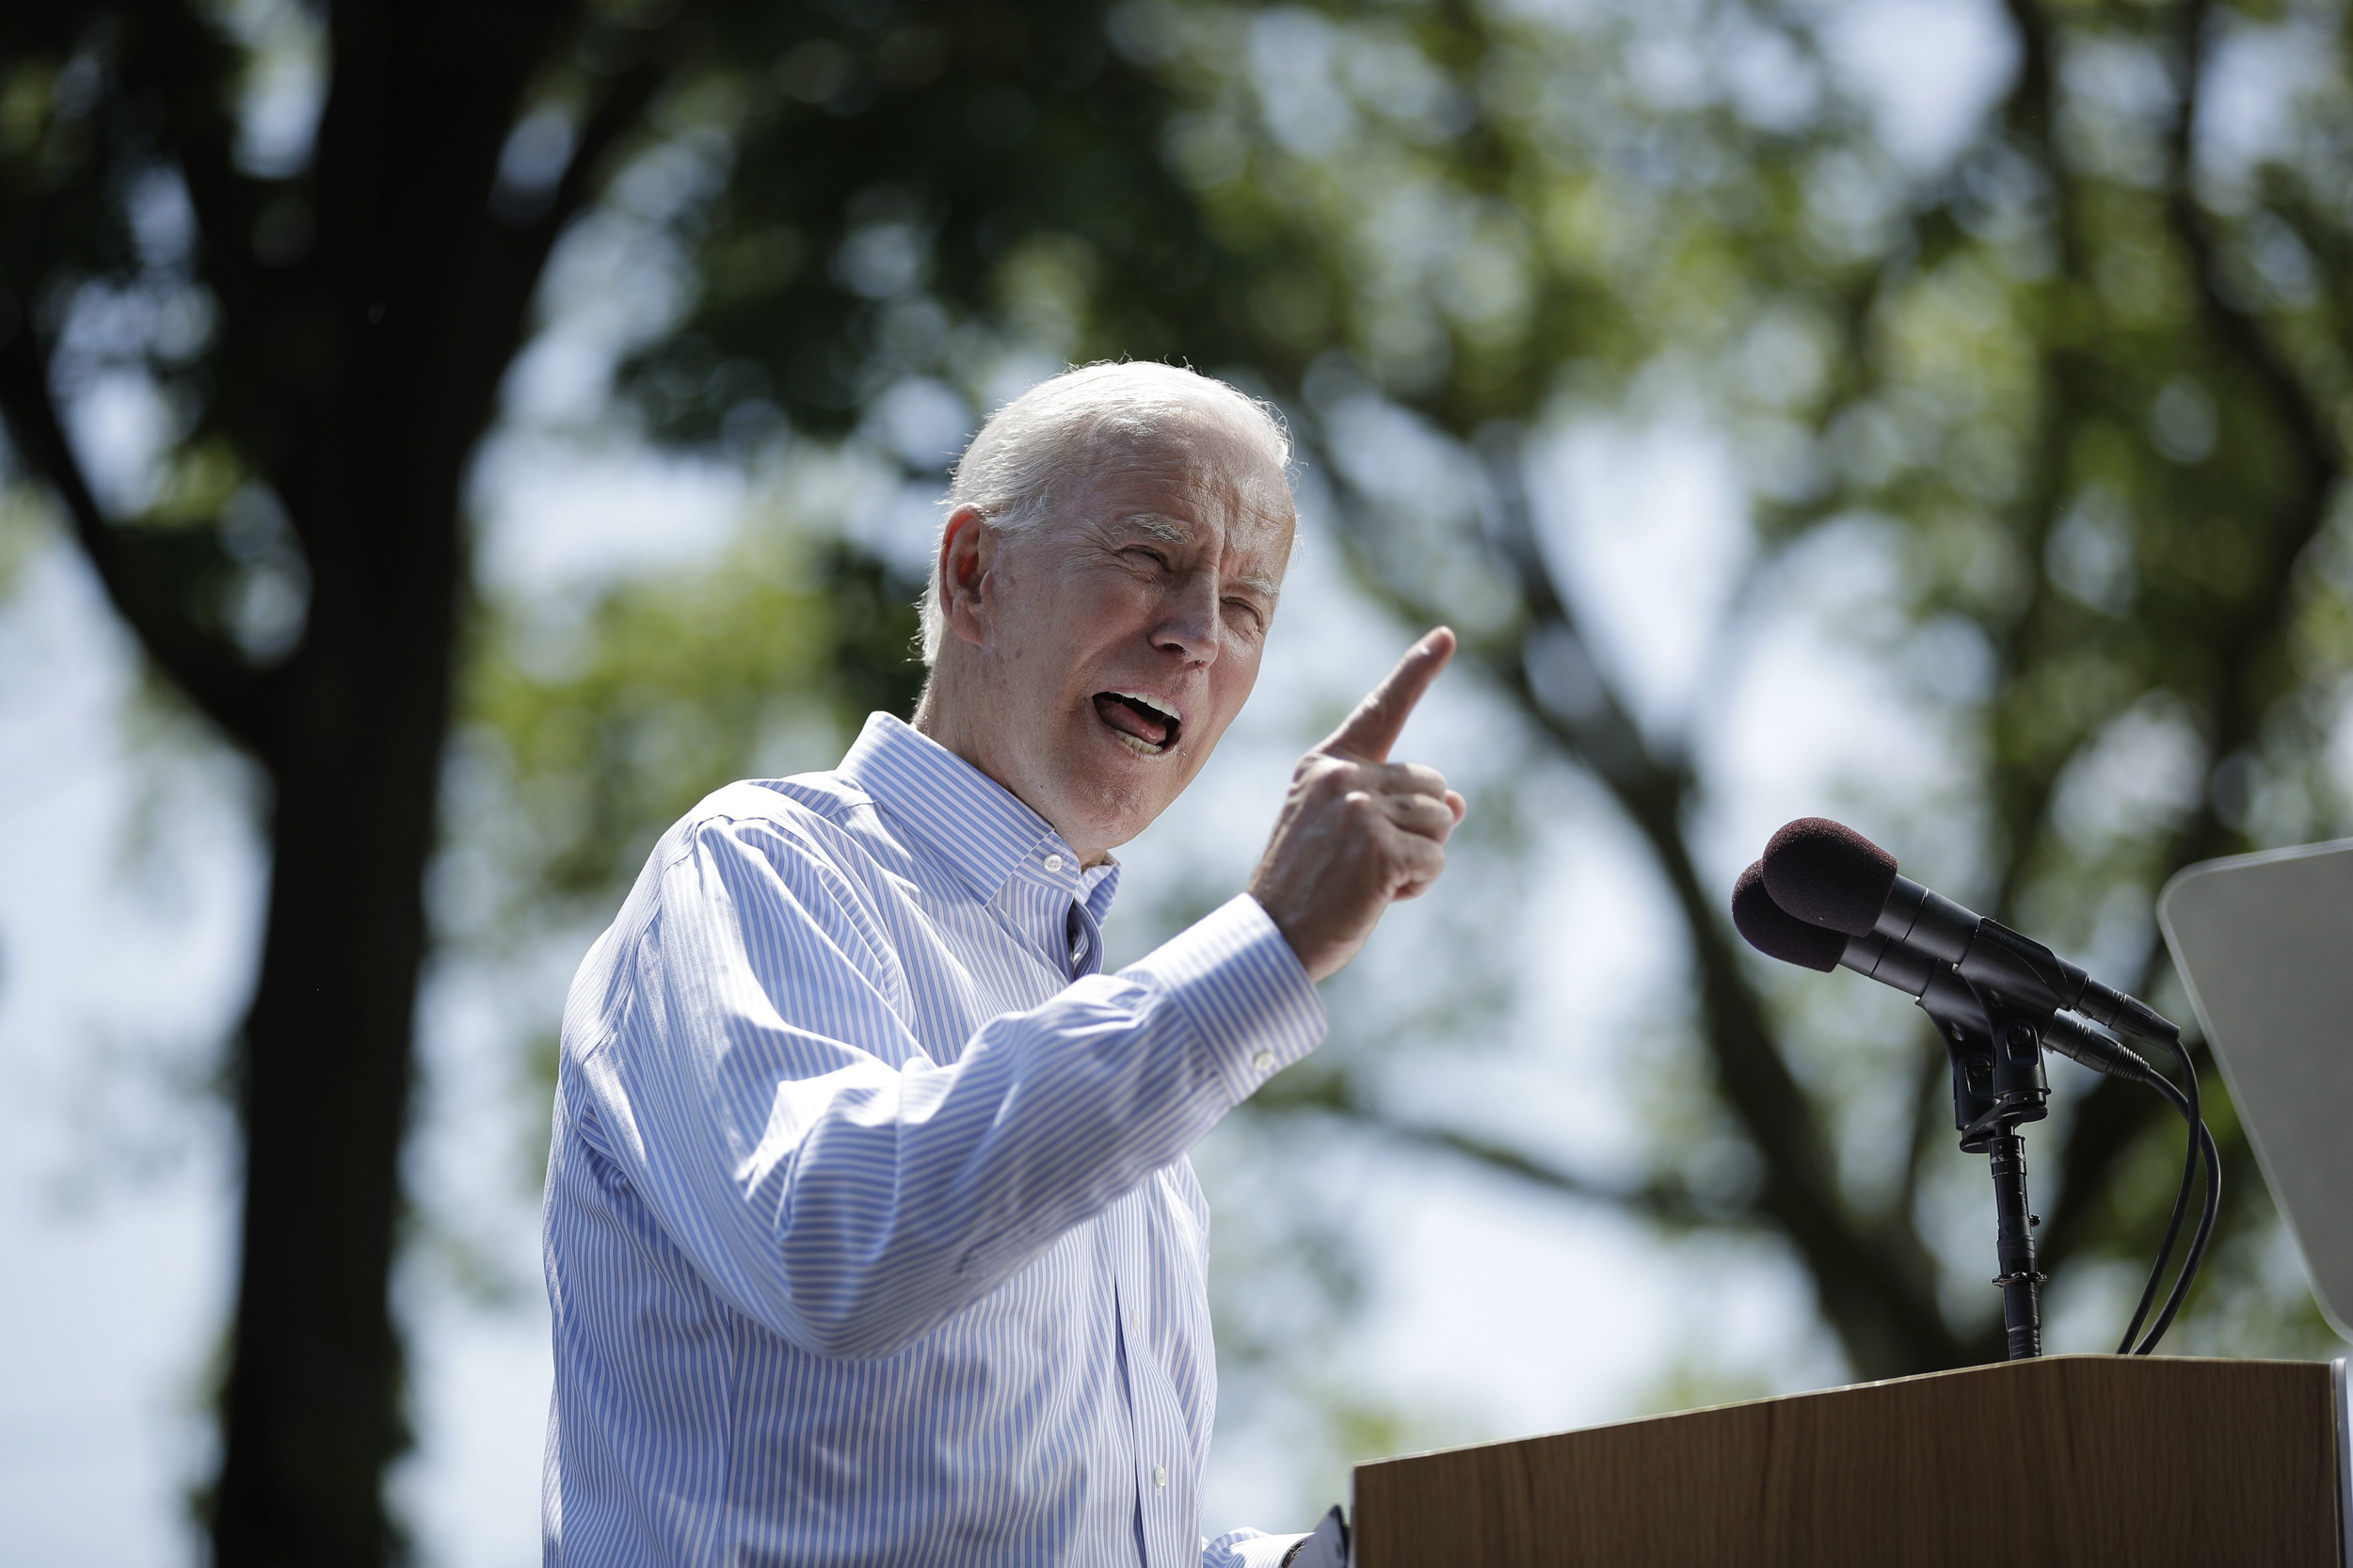 Biden at rally casts himself as candidate who could unify the nation